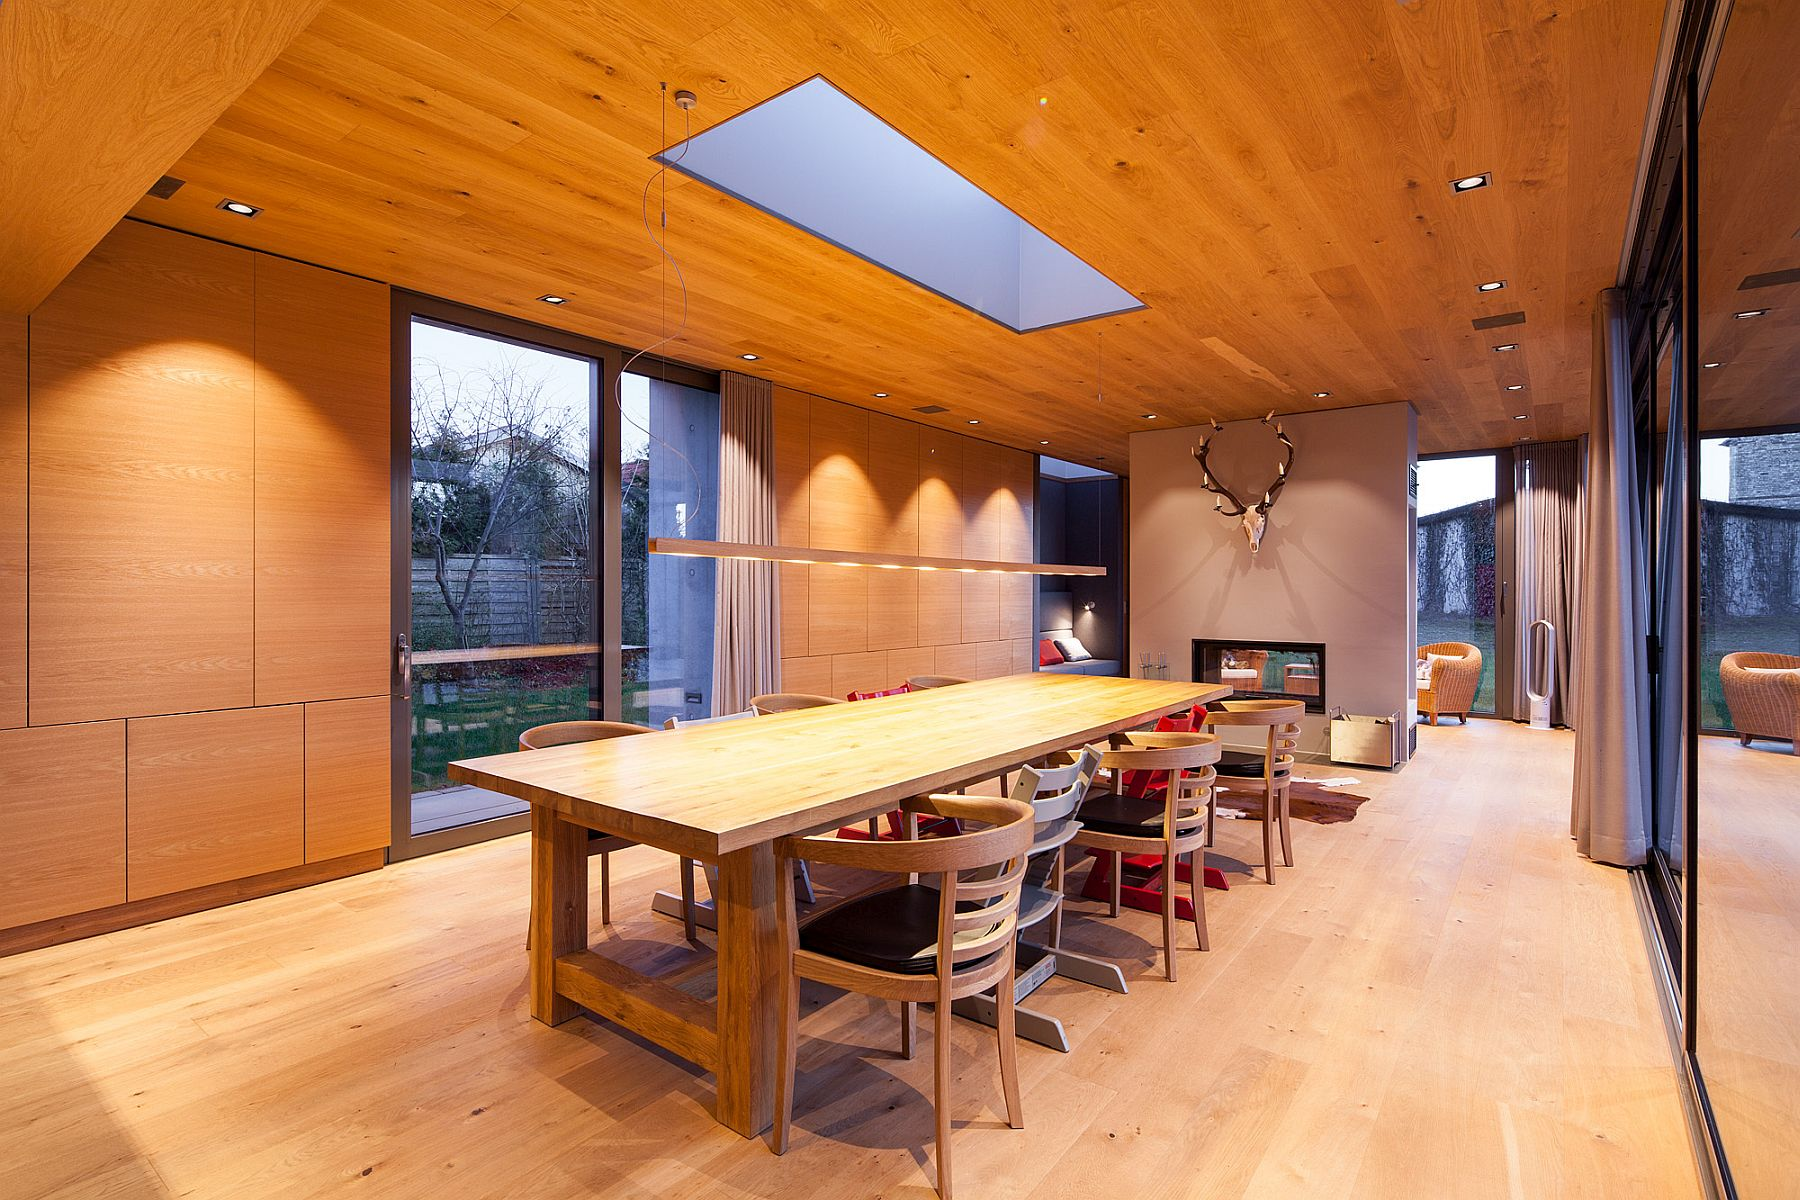 Oak celing and floors coupled with wooden walls and a cozy fireplace in the dining room